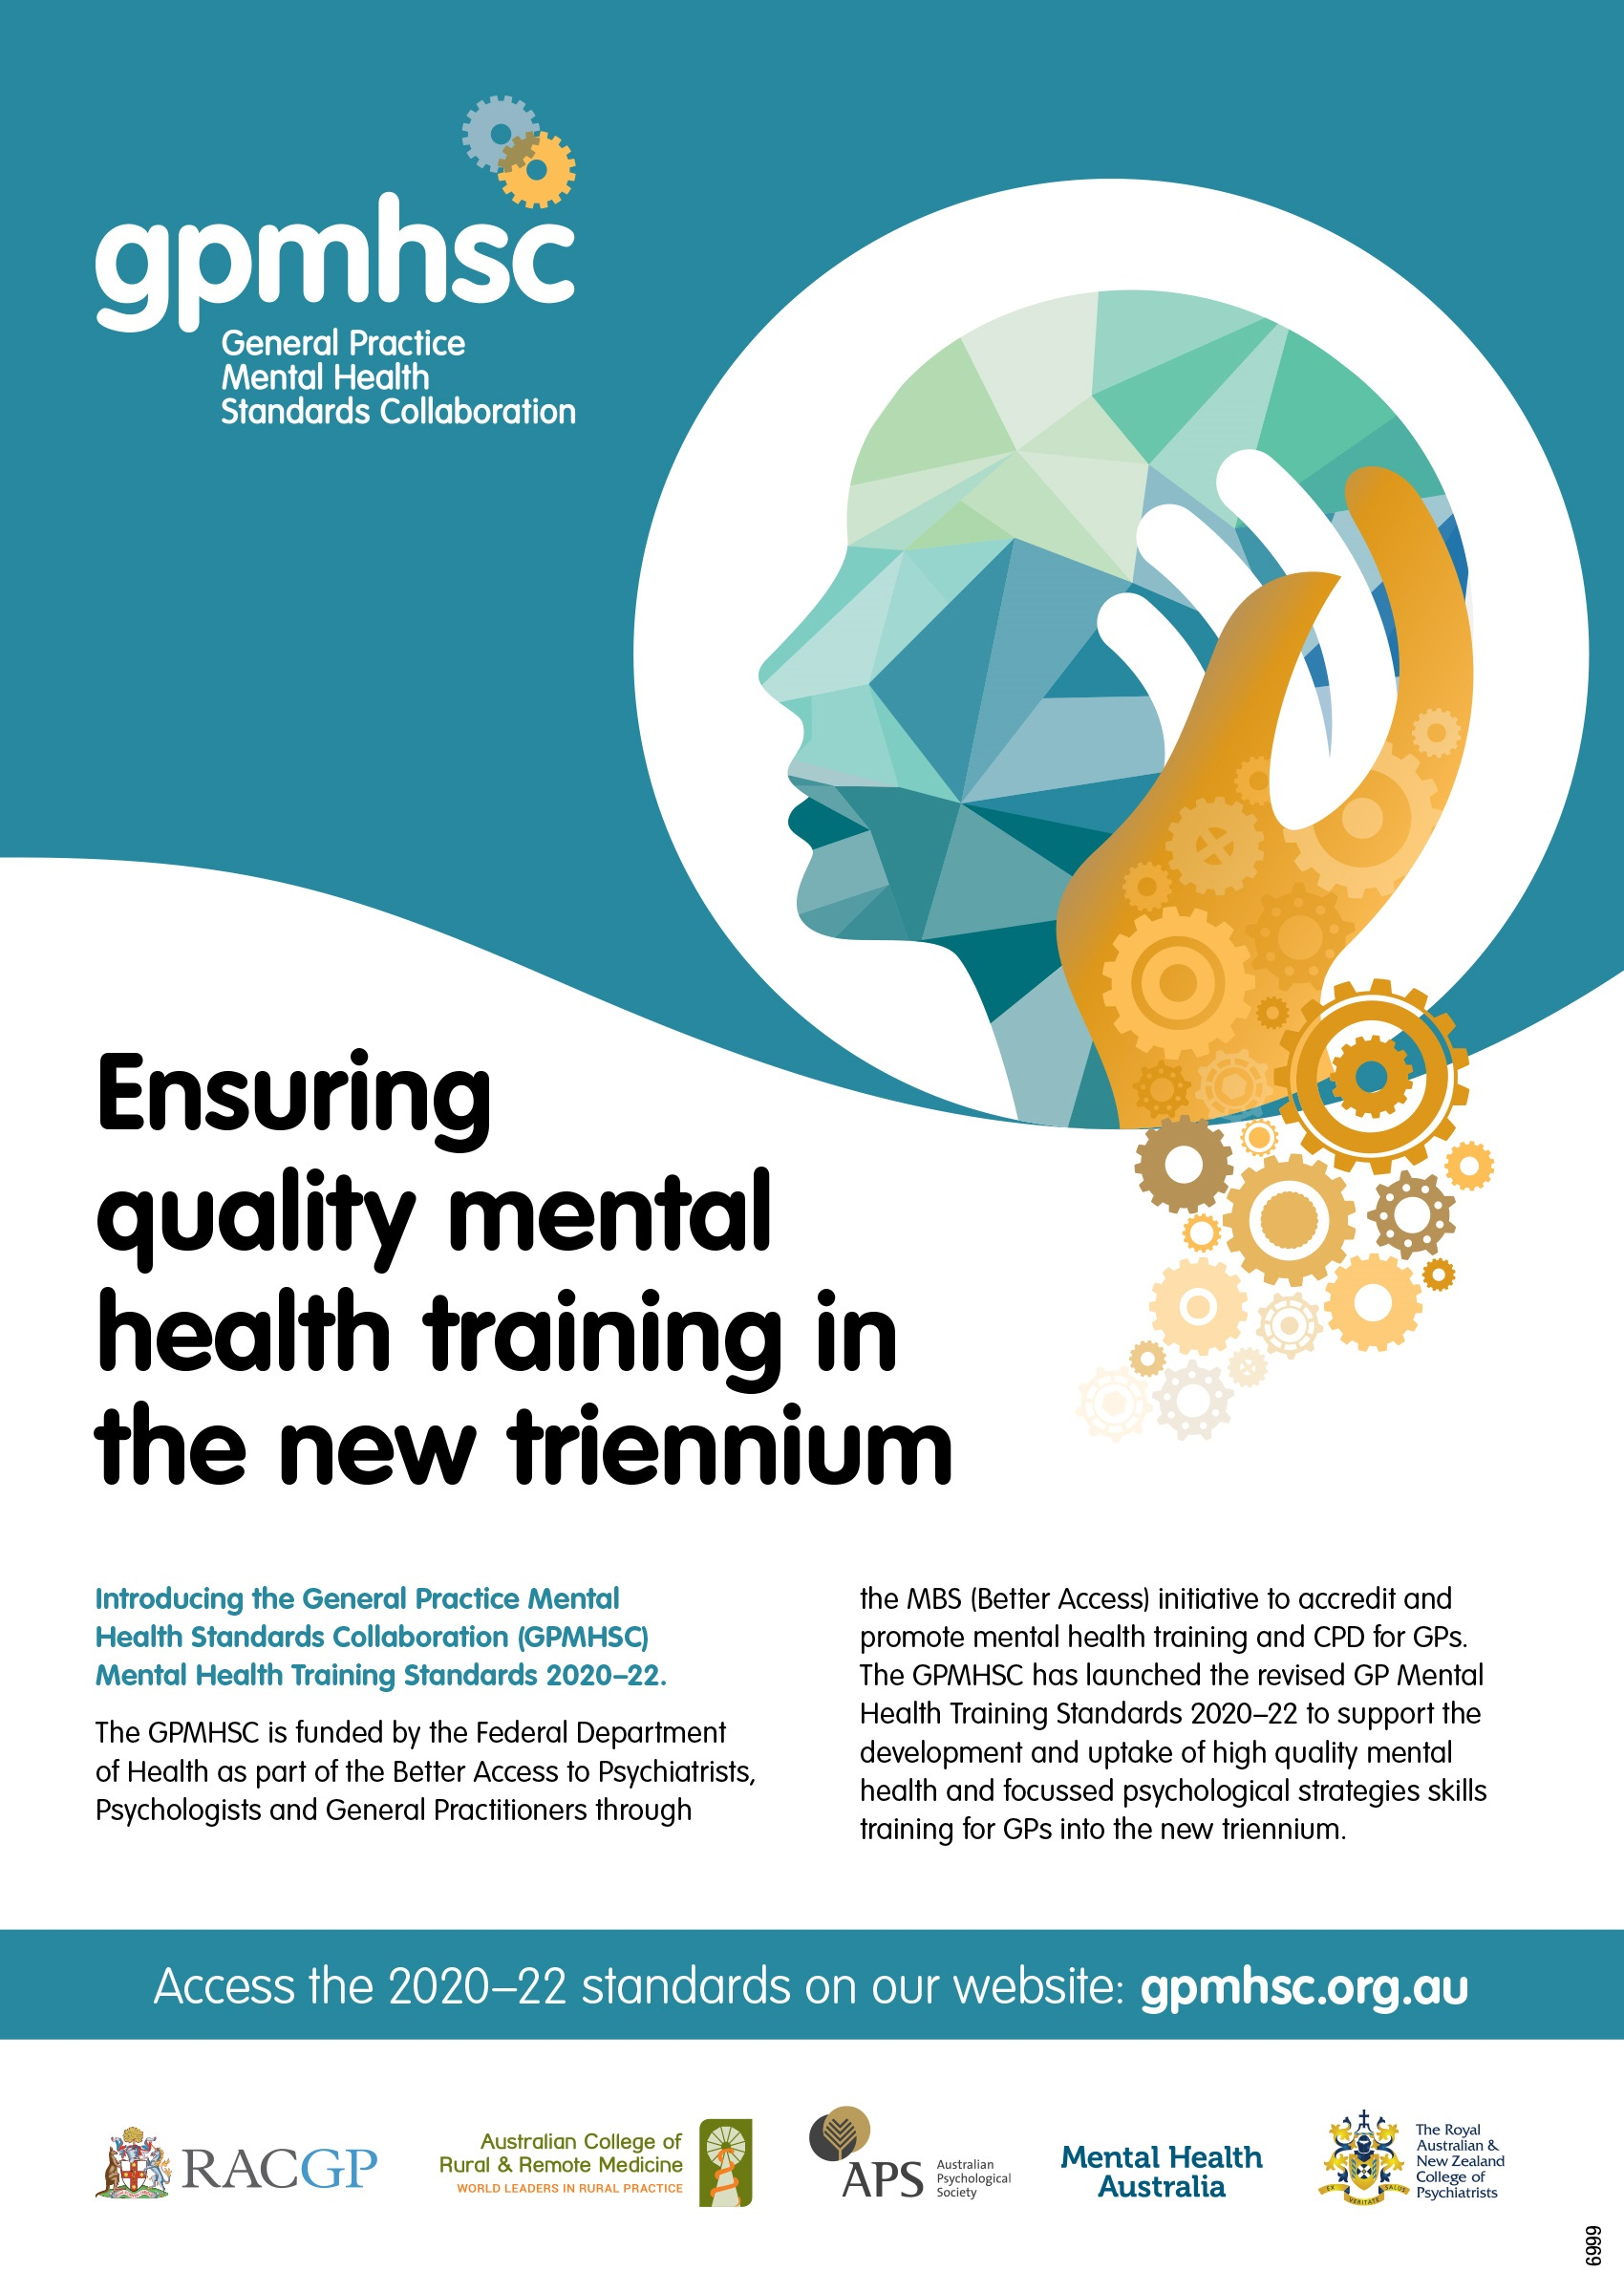 Ensuring quality mental health training in the new trennium GPMHSC